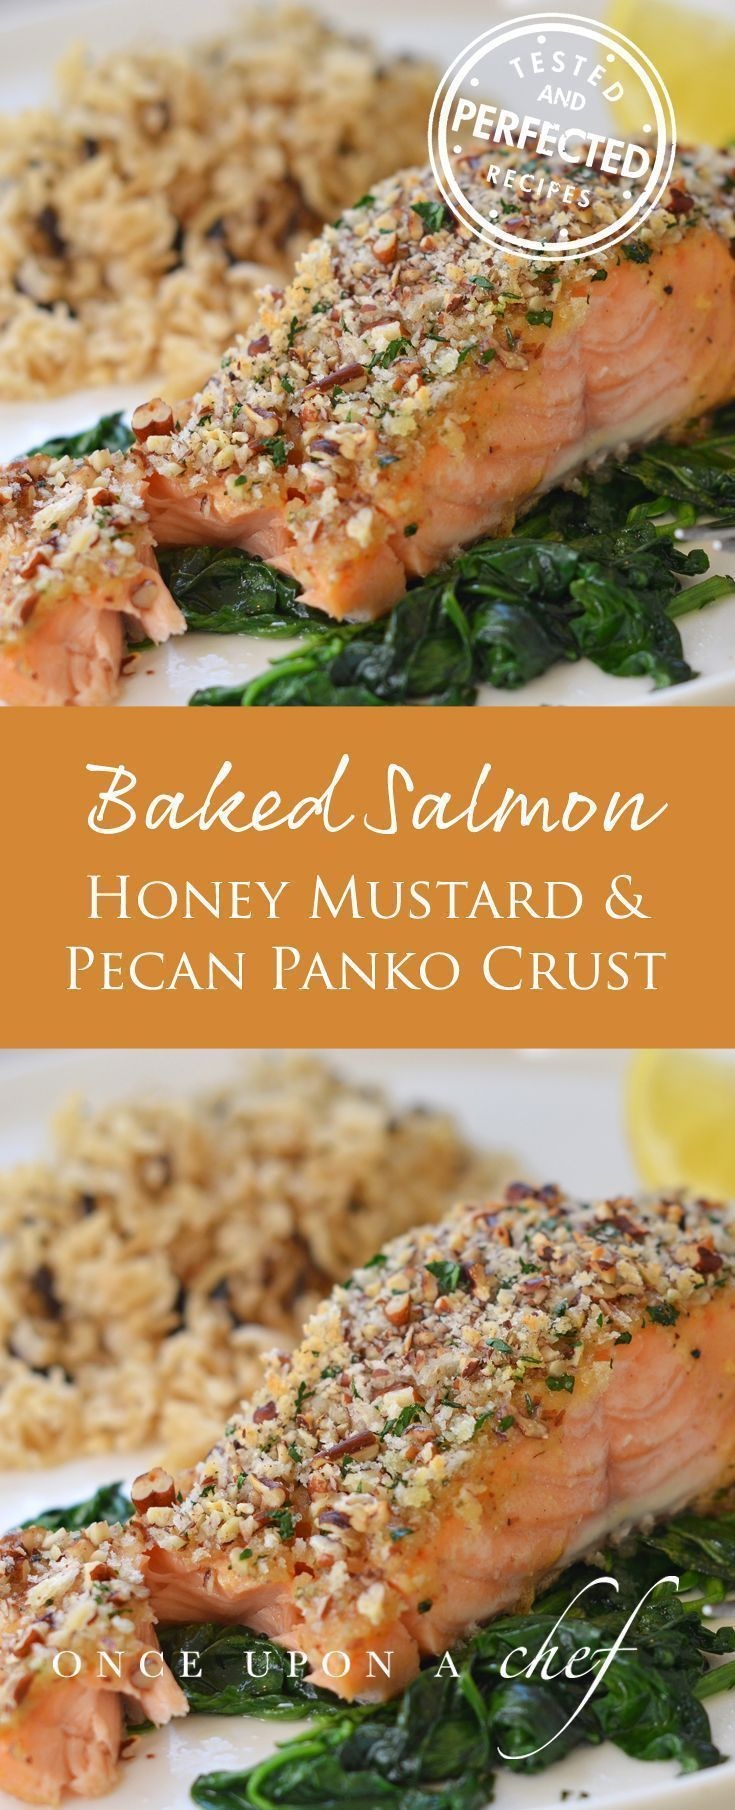 Baked Salmon with Honey Mustard and Pecan Panko Crust (Healthy Baking Dinner)